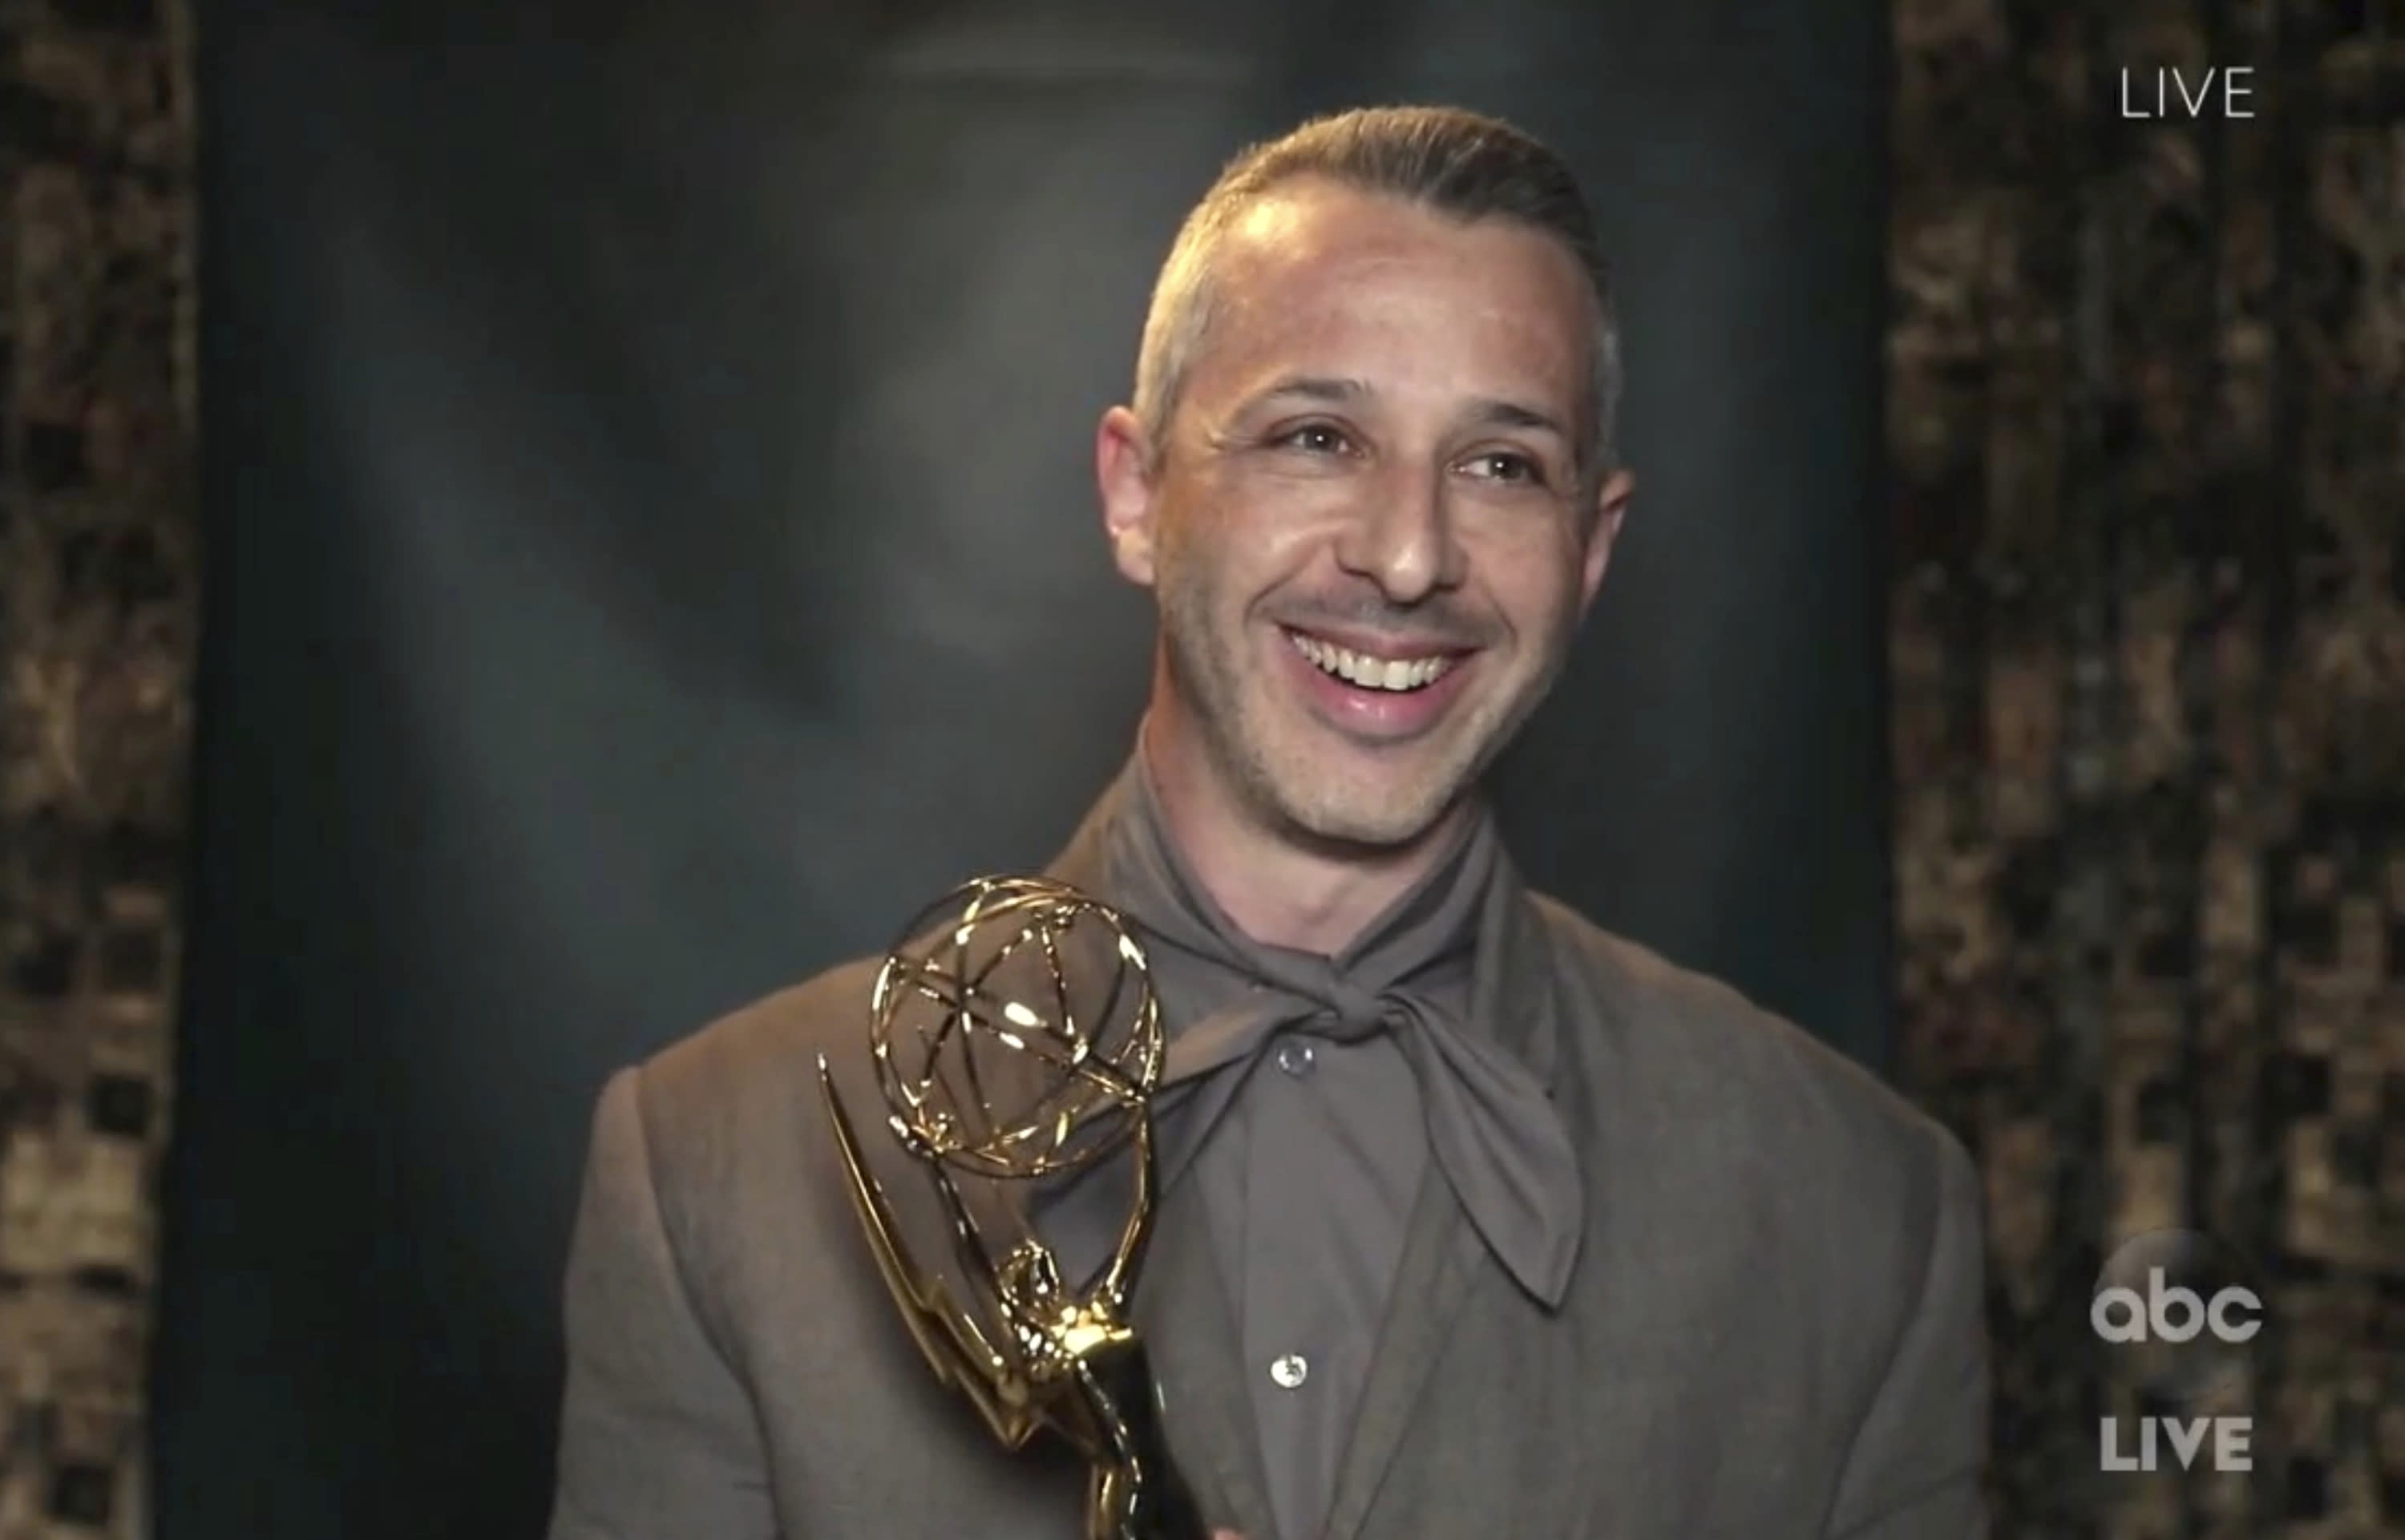 """In this video grab captured on Sept. 20, 2020, courtesy of the Academy of Television Arts & Sciences and ABC Entertainment, Jeremy Strong accepts the award for outstanding lead actor in a drama series for """"Succession"""" during the 72nd Emmy Awards broadcast. (The Television Academy and ABC Entertainment via AP)"""